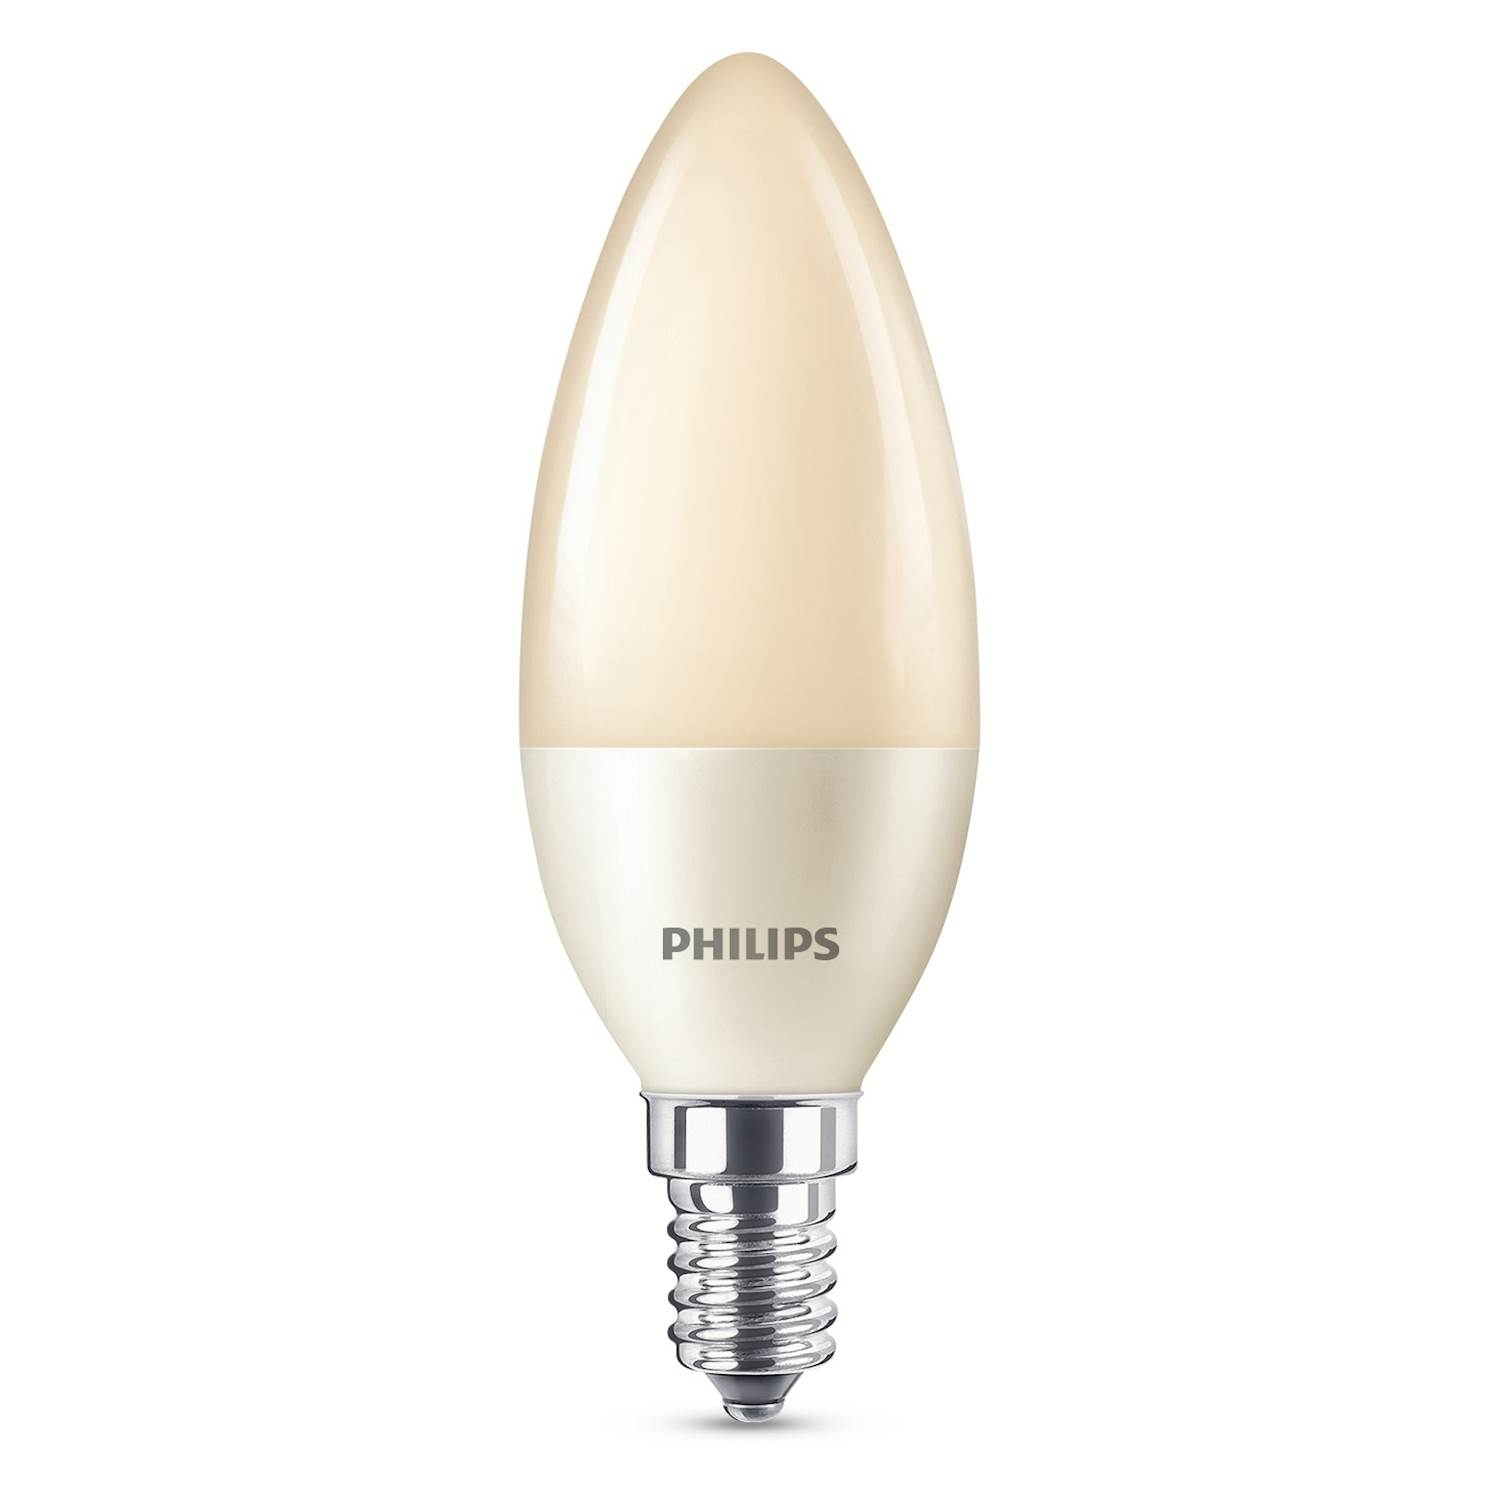 Philips LED KRON 4W E14 FL FR D